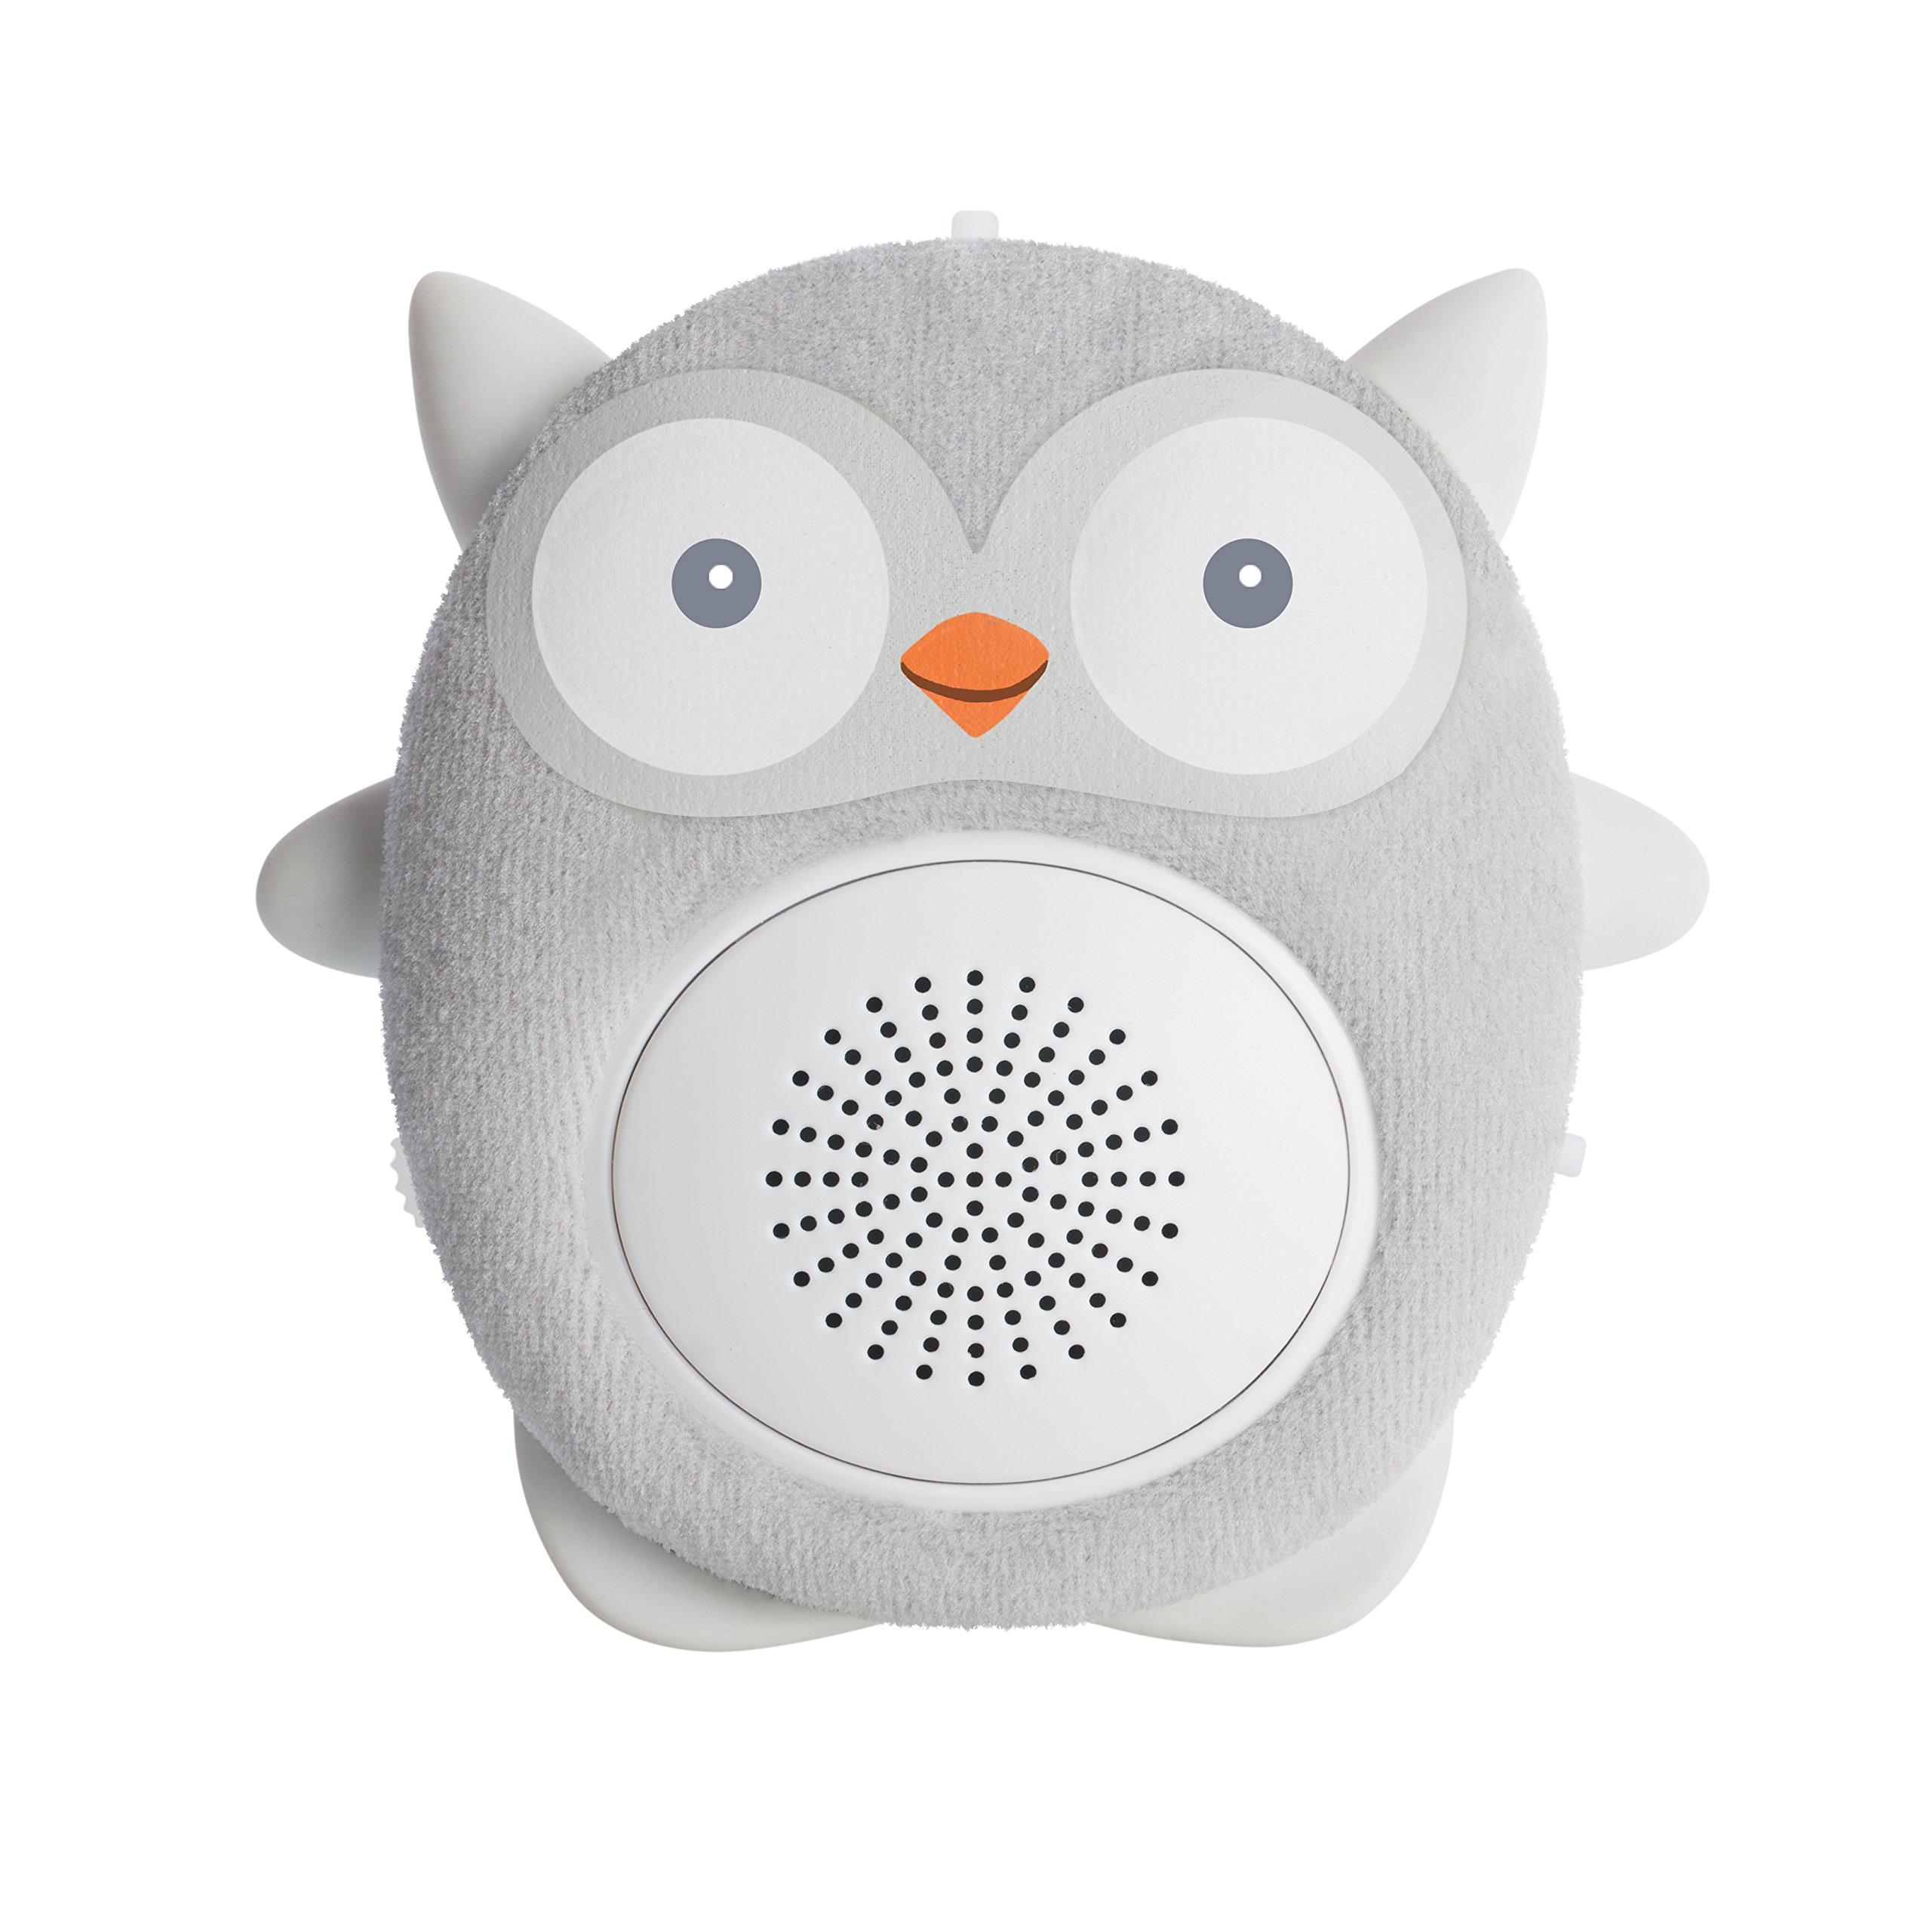 SoundBub, White Noise Machine and Bluetooth Speaker | Portable and Rechargeable Baby Sleep Sound Soother by WavHello – Ollie the Owl, Gray